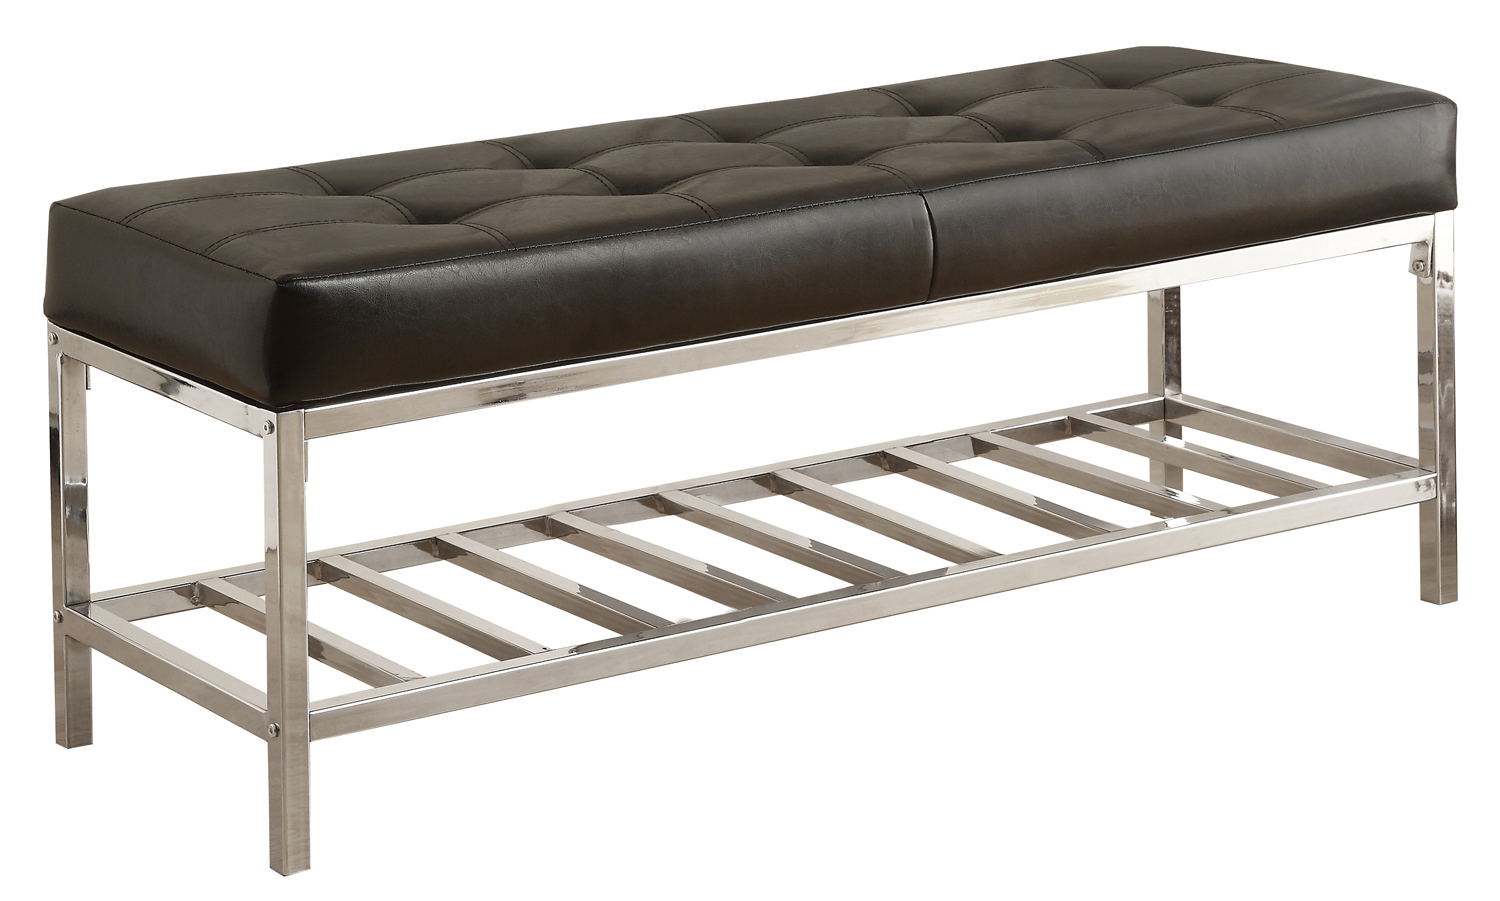 "48"" Sturdy Yet Comfortable Bench With Polished-Chrome Base And Black Leather-Look Fixed Cushion"